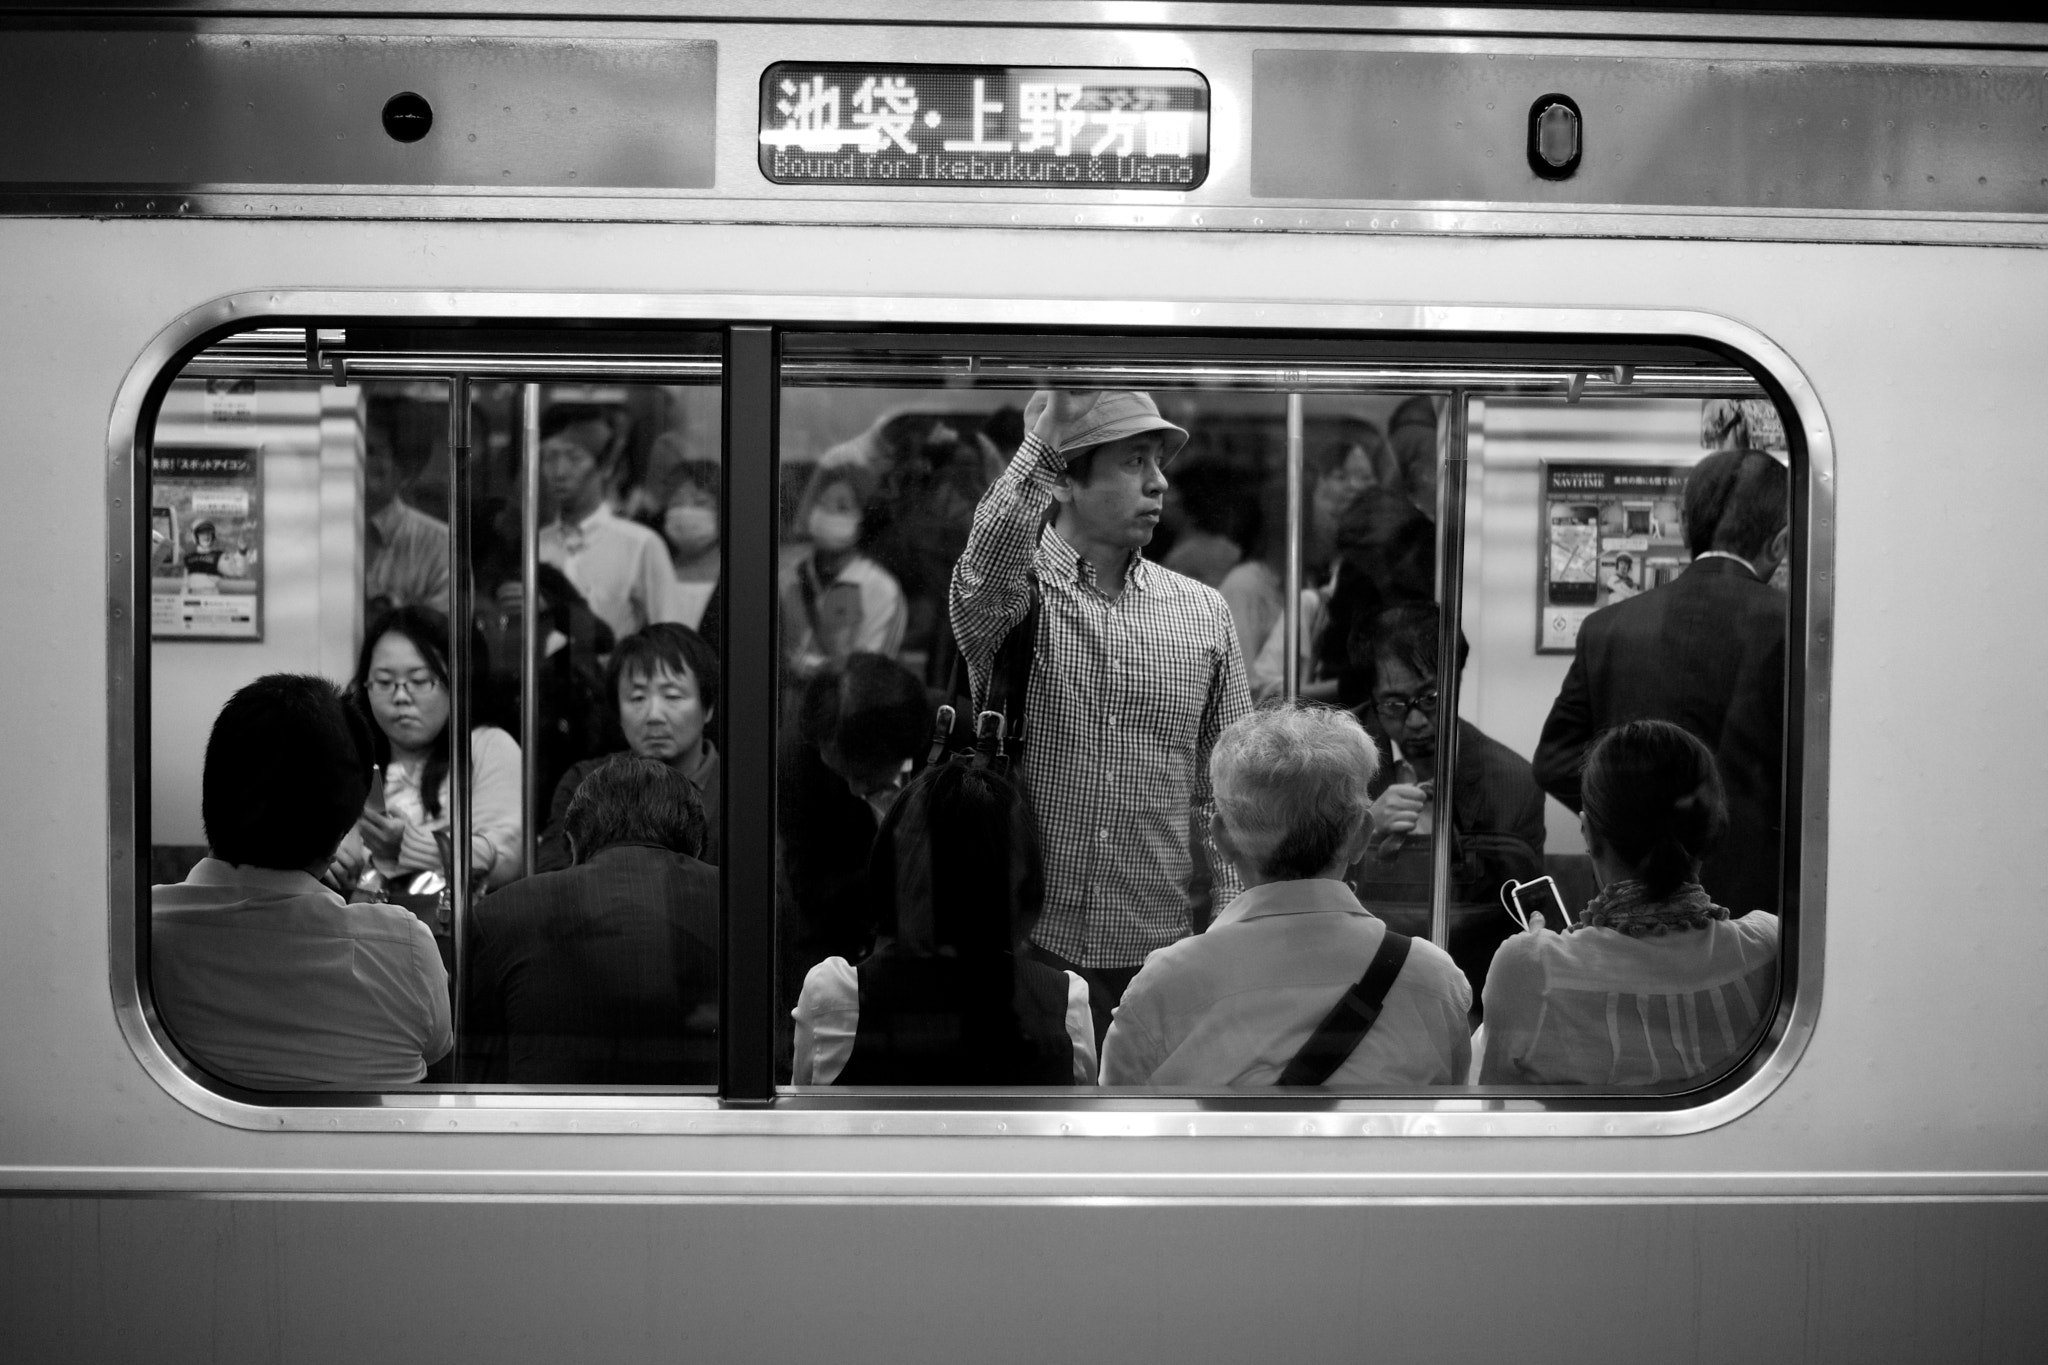 Photograph Bound for Ikebukuro by Adrian Lee on 500px